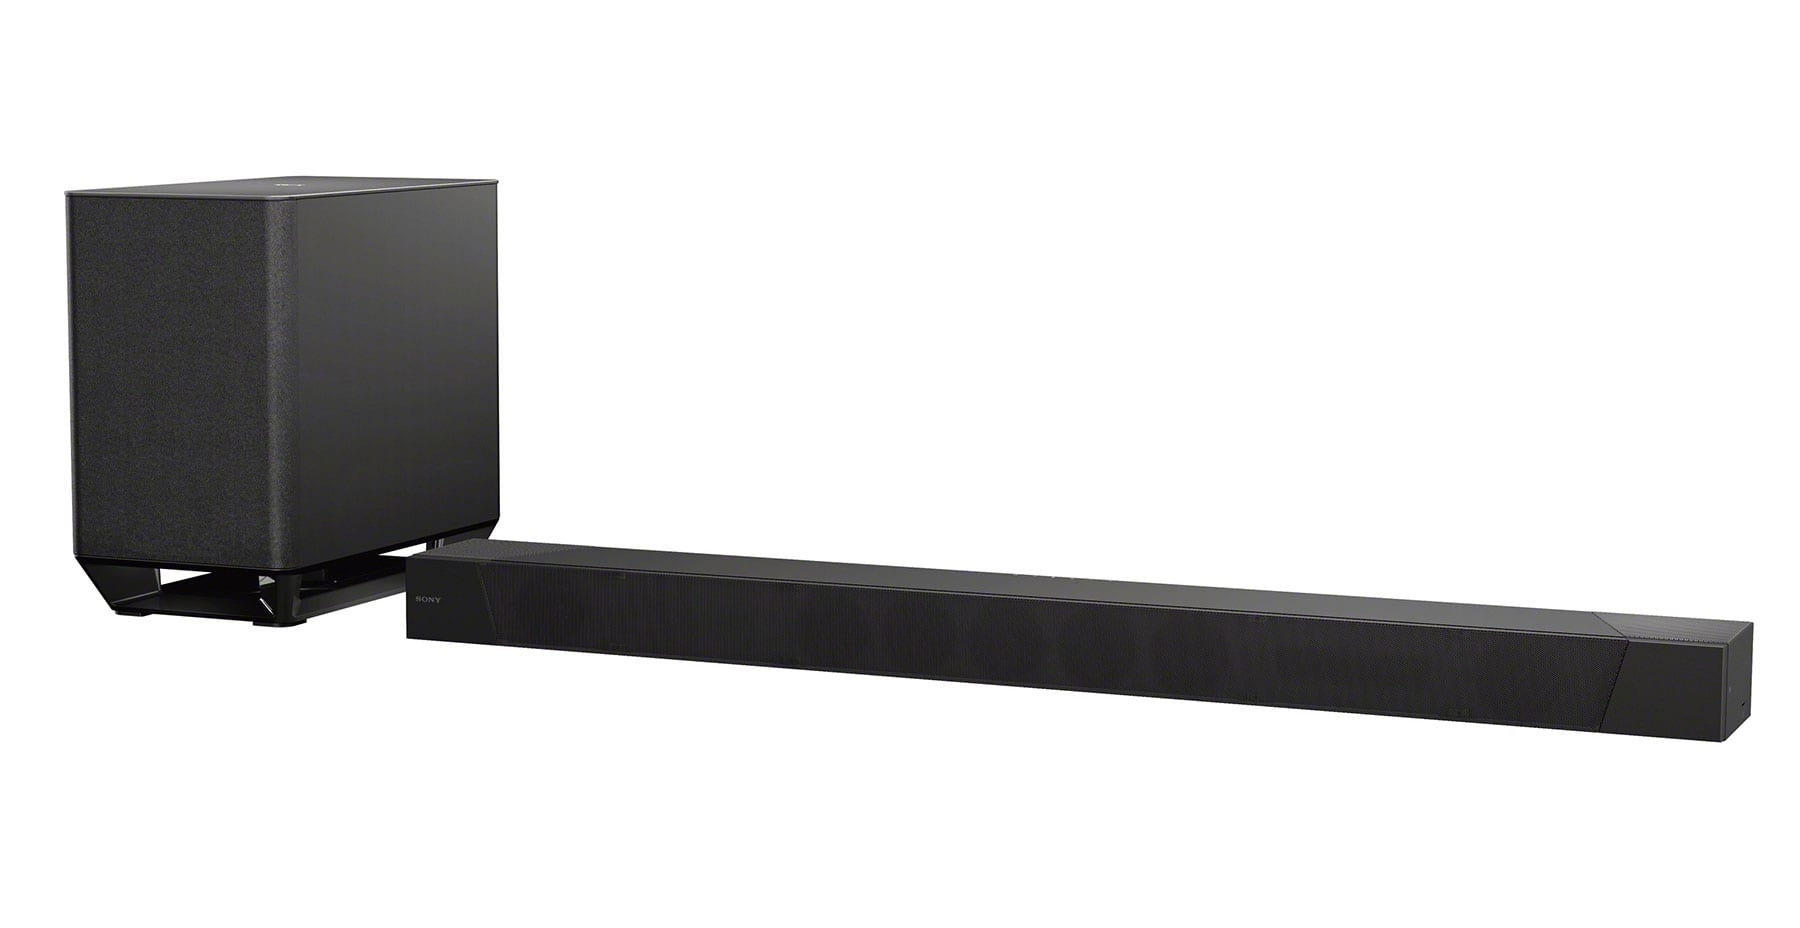 Best Soundbar 2020.How To Buy A Soundbar In 2019 Engadget